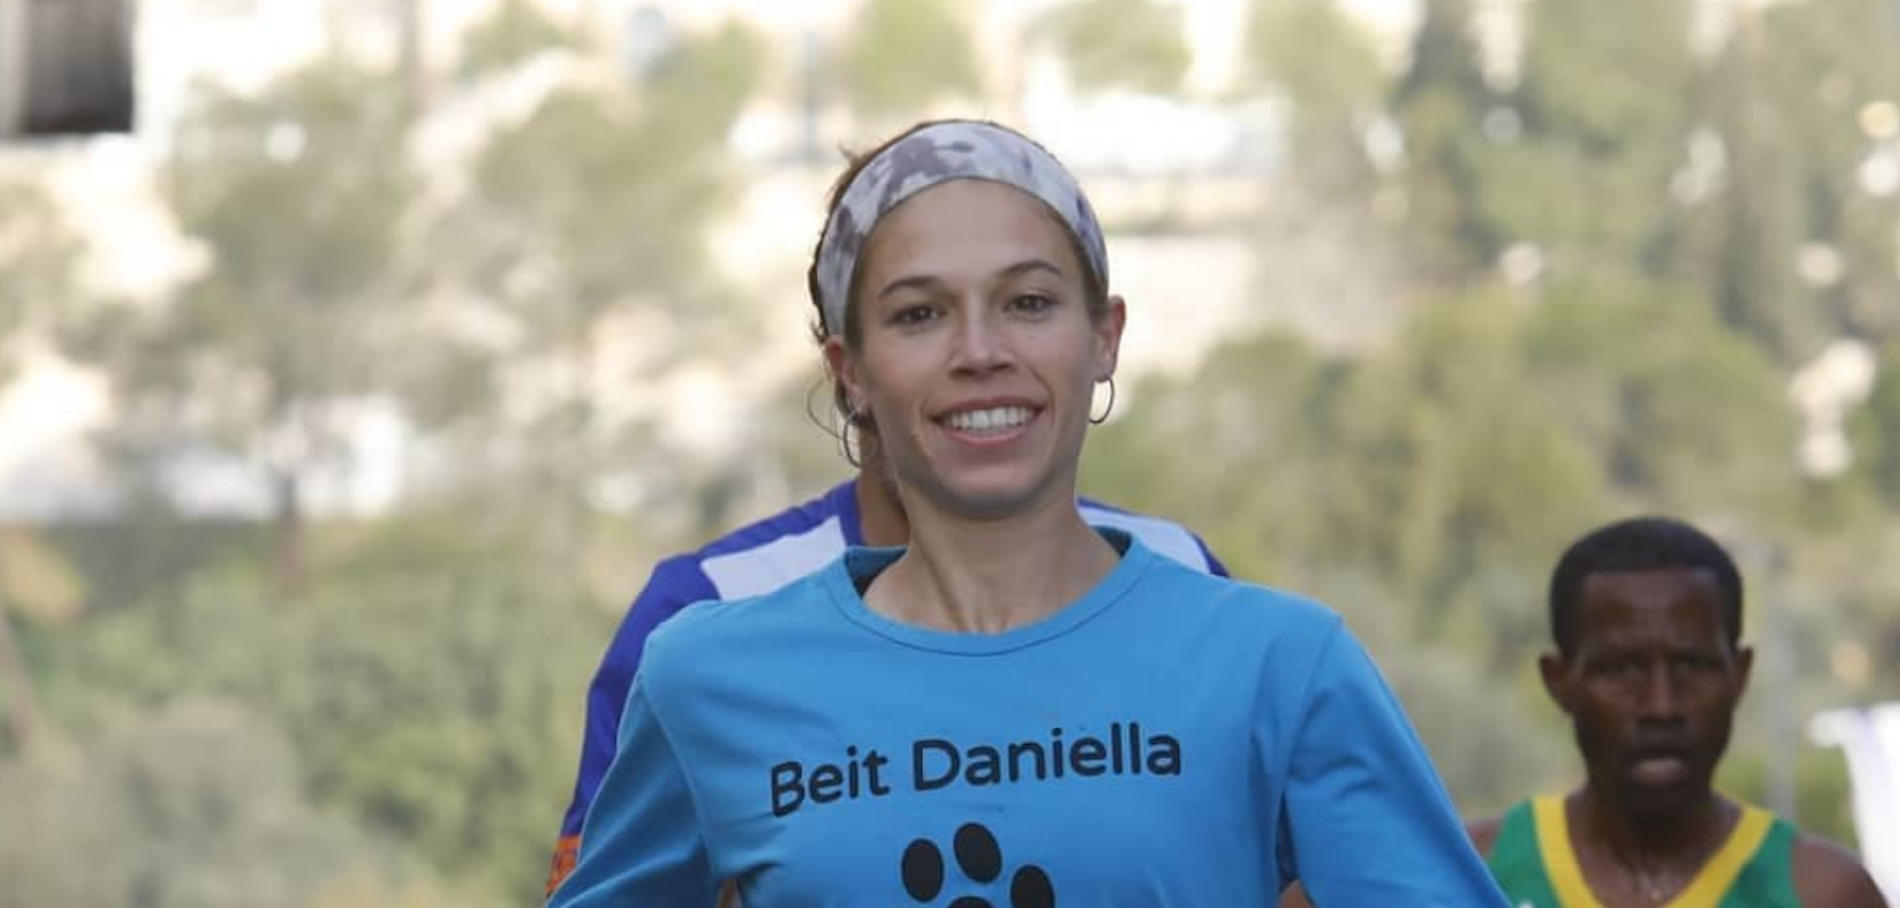 Marathon Mother Celebrates First U.S. Win & Other Orthodox Jews in the News